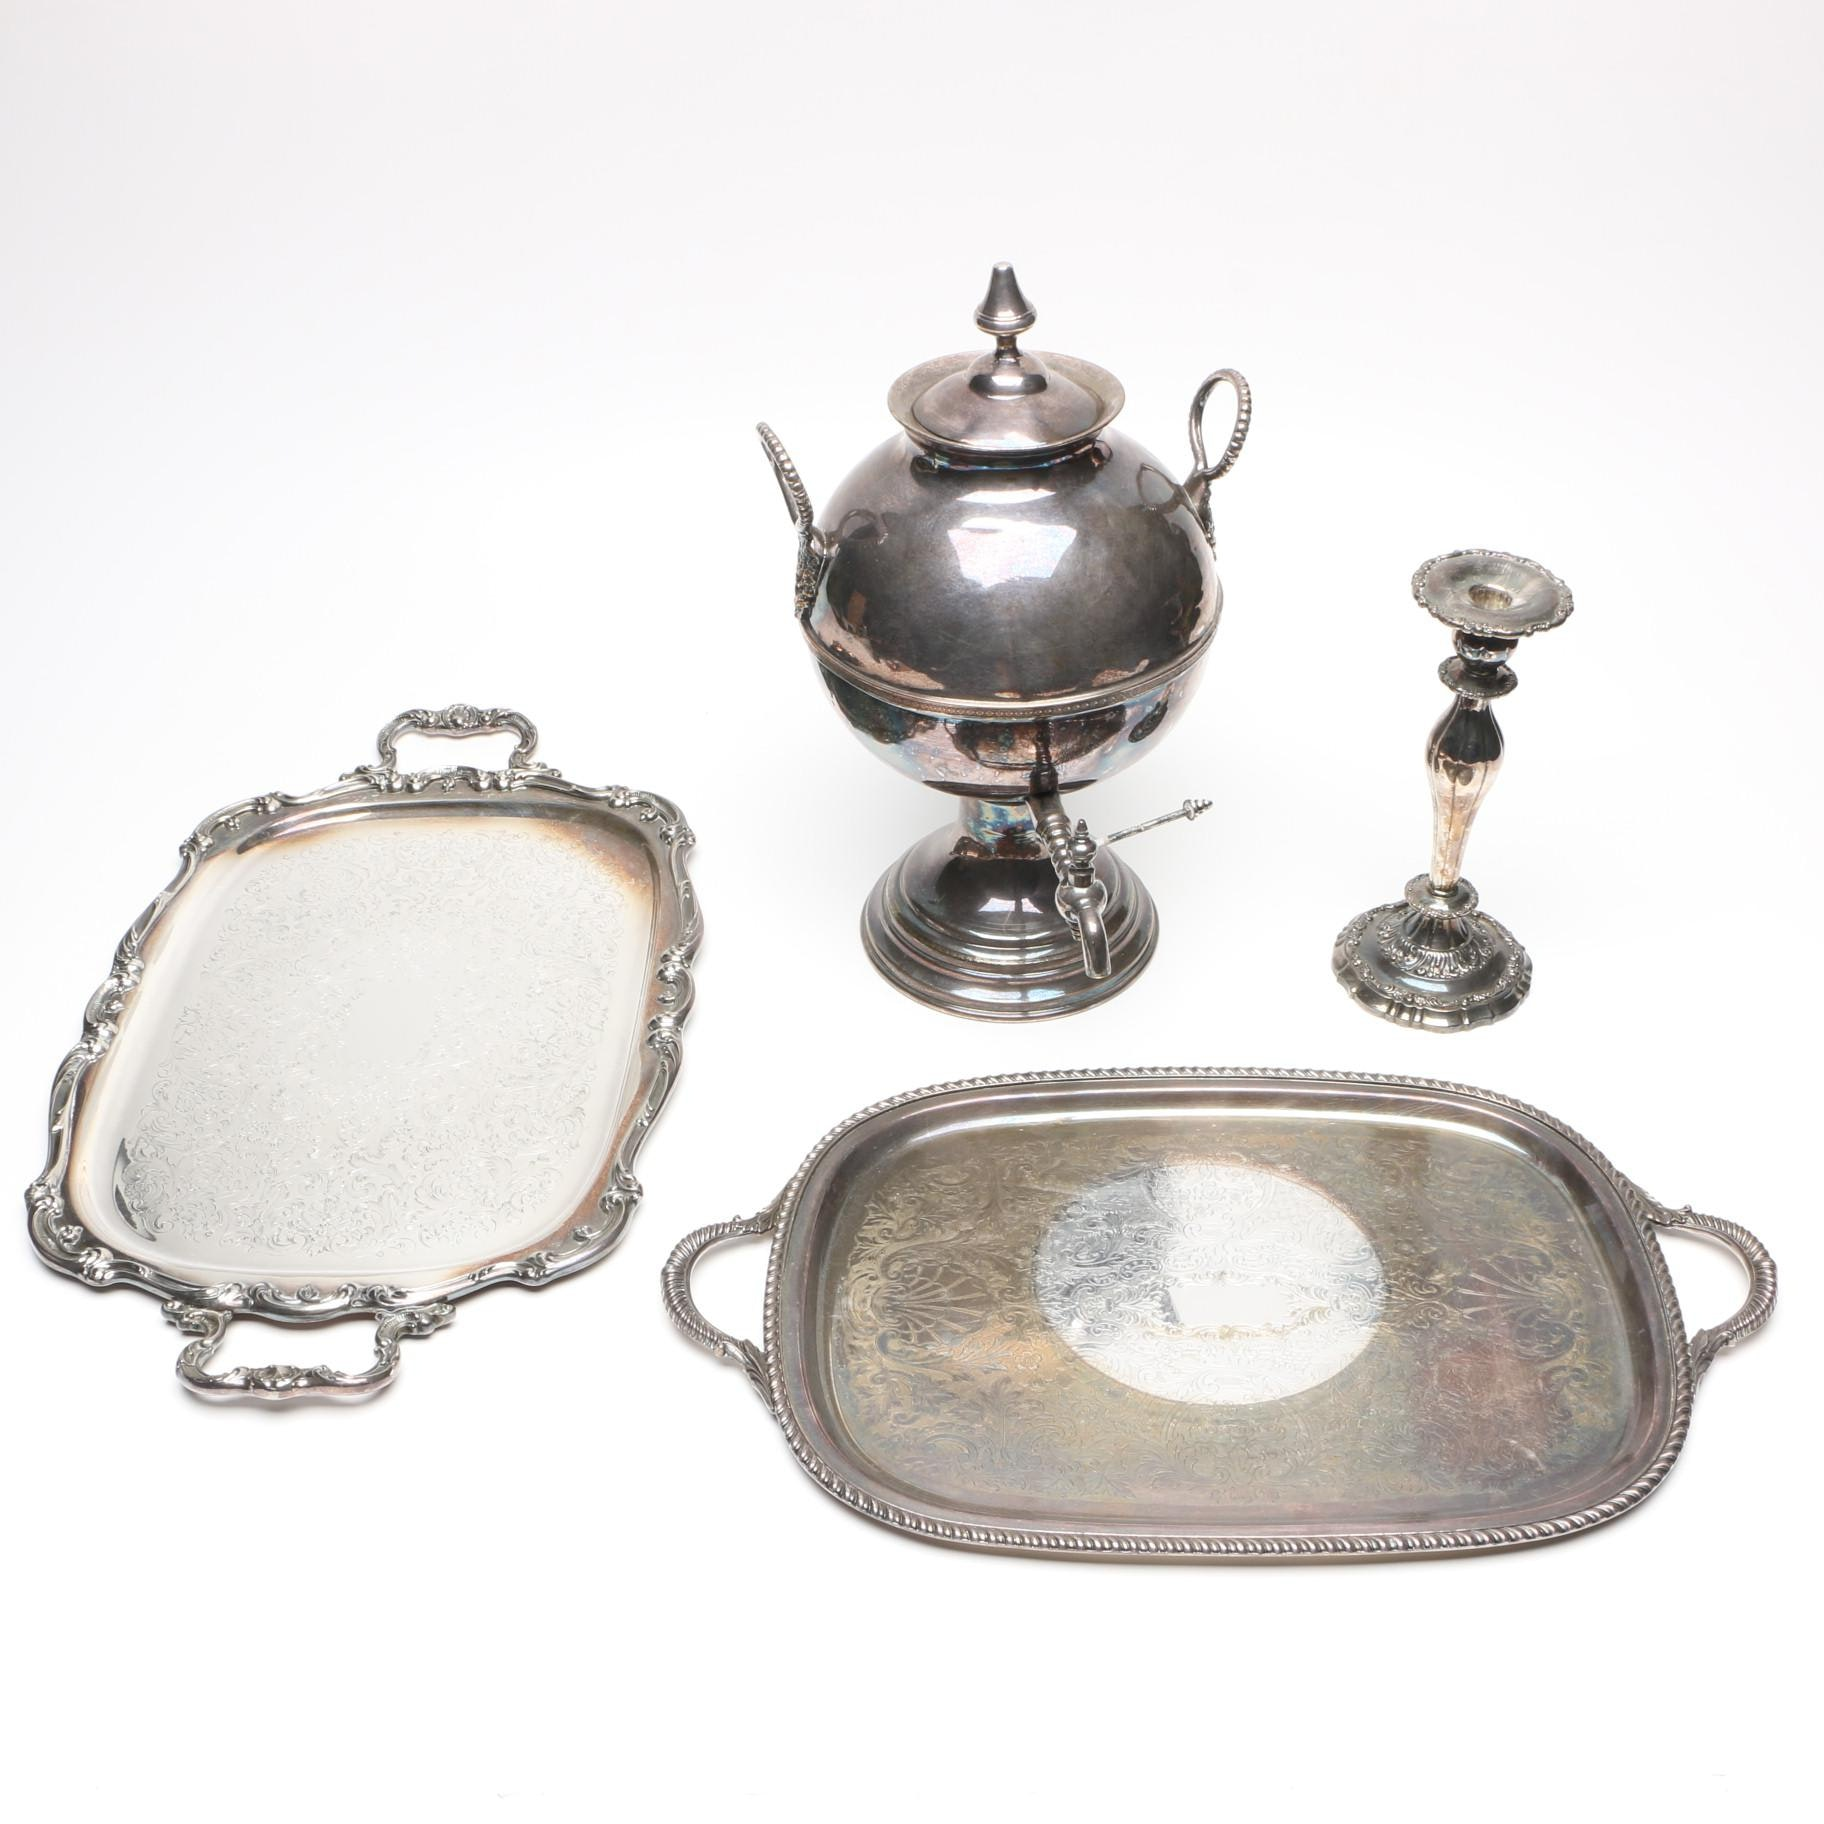 Silver Plate Samovar and Other Silver Plate Serveware